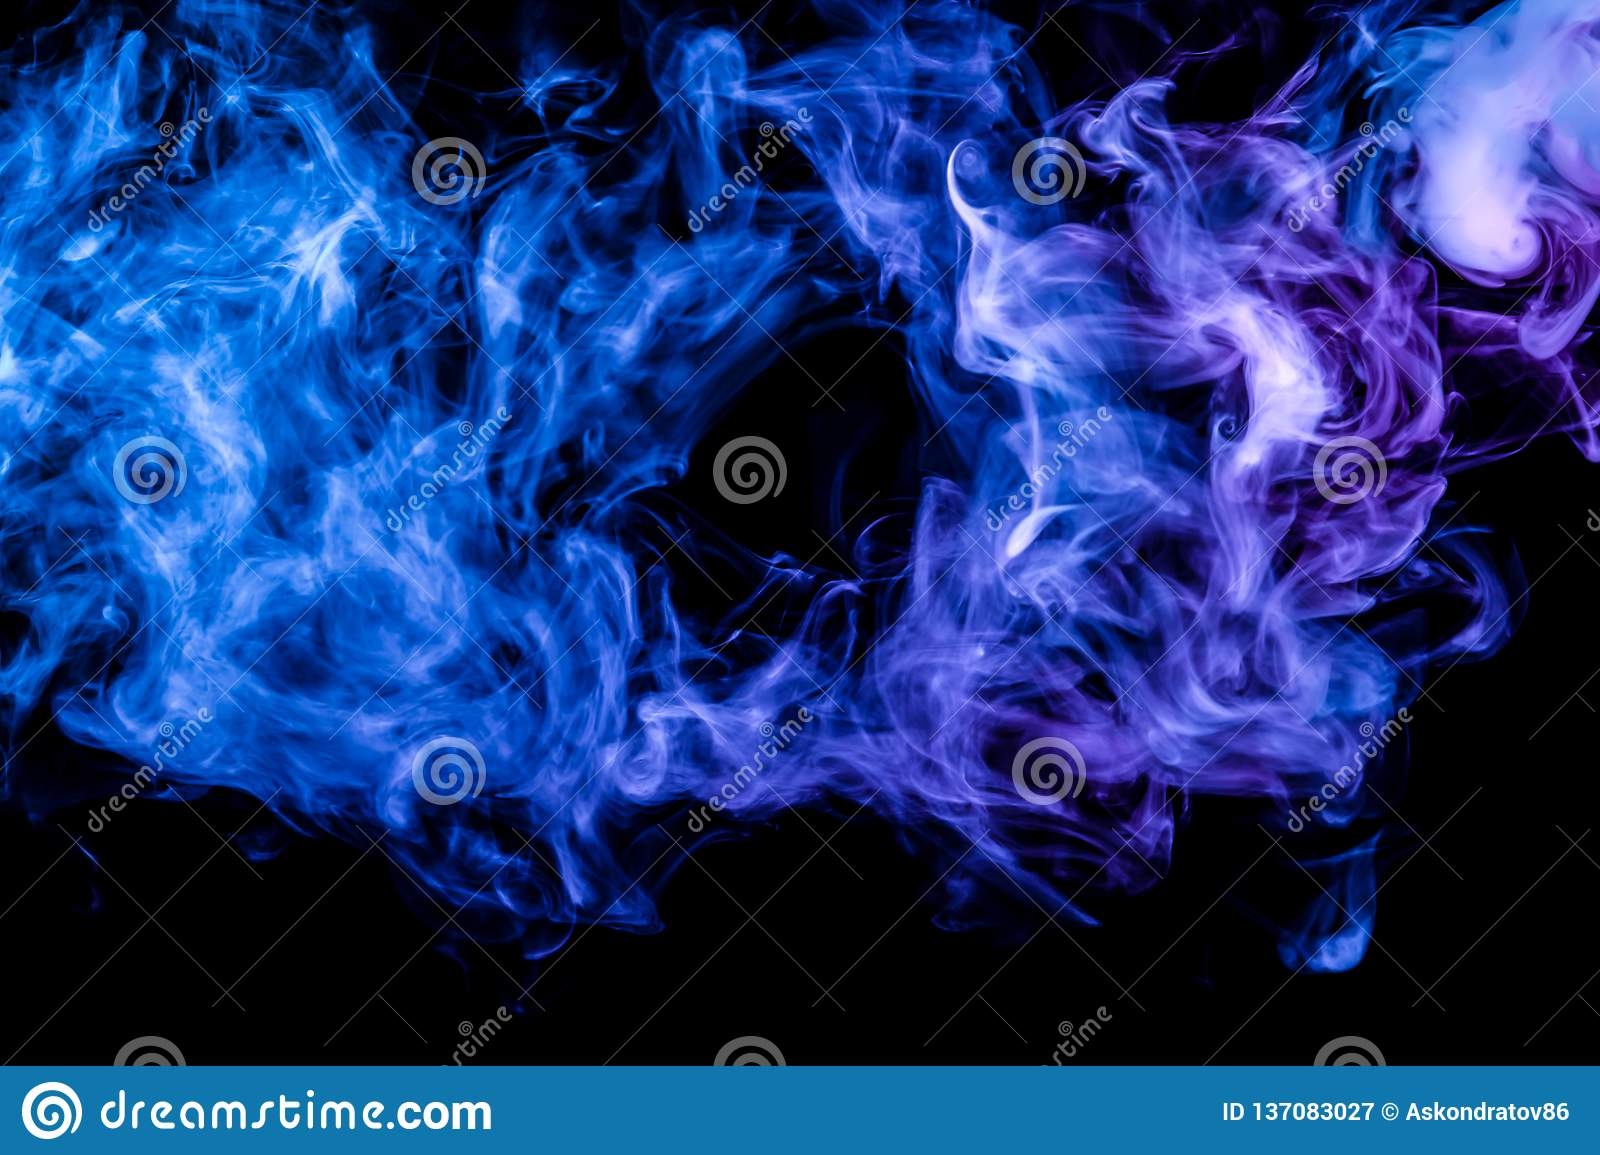 Clubs of colored smoke of blue and pink color on a black isolated background in the form of clouds from the vape